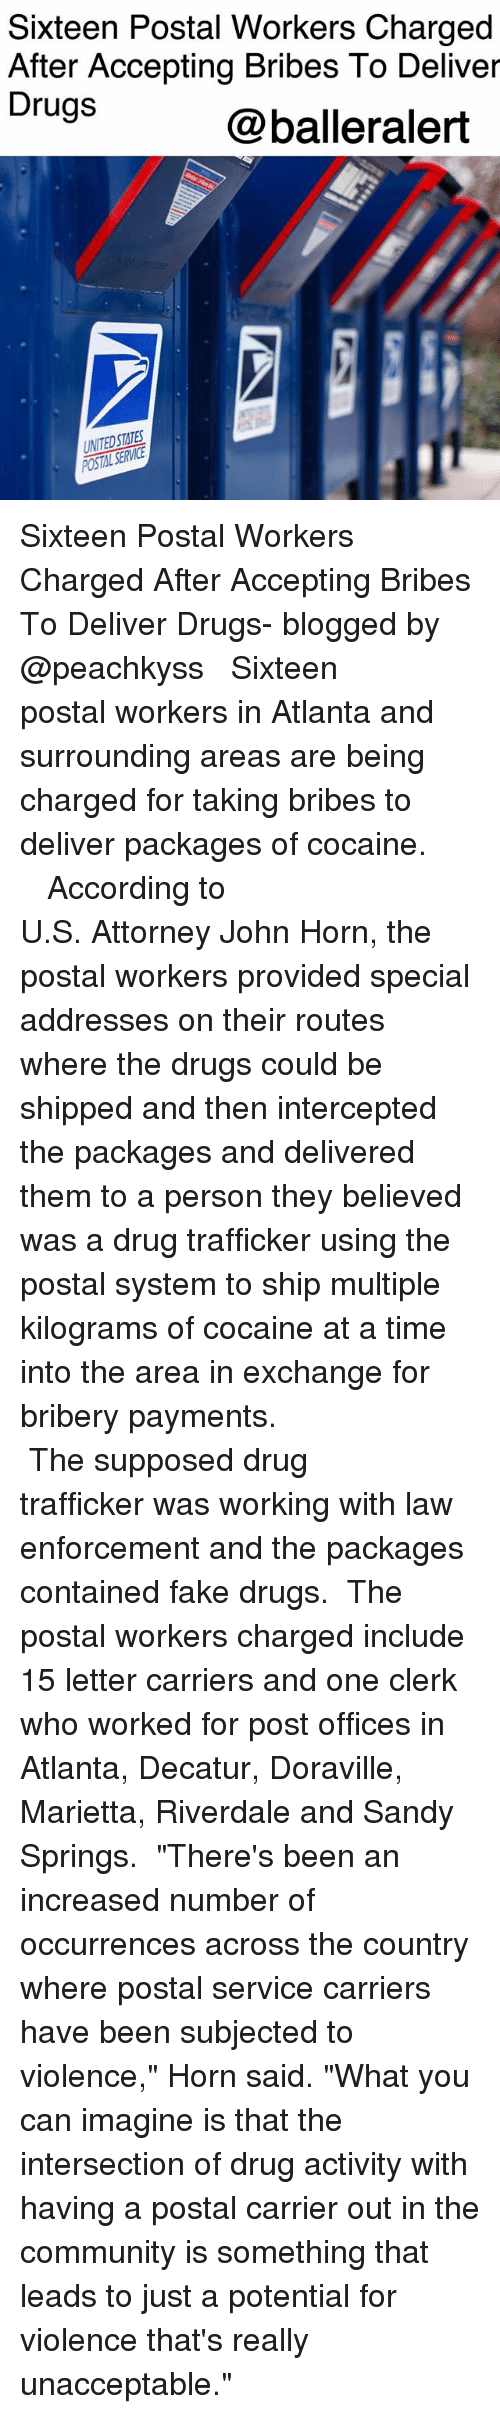 """Community, Drugs, and Fake: Sixteen Postal Workers Charged  After Accepting Bribes To Deliver  Drugs  @balleralert  UNITEDSTATES Sixteen Postal Workers Charged After Accepting Bribes To Deliver Drugs- blogged by @peachkyss ⠀⠀⠀⠀⠀⠀⠀ ⠀⠀⠀⠀⠀⠀⠀ Sixteen postal workers in Atlanta and surrounding areas are being charged for taking bribes to deliver packages of cocaine. ⠀⠀⠀⠀⠀⠀⠀ ⠀⠀⠀⠀⠀⠀⠀ ⠀⠀⠀⠀⠀⠀⠀ According to U.S. Attorney John Horn, the postal workers provided special addresses on their routes where the drugs could be shipped and then intercepted the packages and delivered them to a person they believed was a drug trafficker using the postal system to ship multiple kilograms of cocaine at a time into the area in exchange for bribery payments. ⠀⠀⠀⠀⠀⠀⠀ ⠀⠀⠀⠀⠀⠀⠀ ⠀⠀⠀⠀⠀⠀⠀ The supposed drug trafficker was working with law enforcement and the packages contained fake drugs. ⠀⠀⠀⠀⠀⠀⠀ The postal workers charged include 15 letter carriers and one clerk who worked for post offices in Atlanta, Decatur, Doraville, Marietta, Riverdale and Sandy Springs. ⠀⠀⠀⠀⠀⠀⠀ """"There's been an increased number of occurrences across the country where postal service carriers have been subjected to violence,"""" Horn said. """"What you can imagine is that the intersection of drug activity with having a postal carrier out in the community is something that leads to just a potential for violence that's really unacceptable."""""""